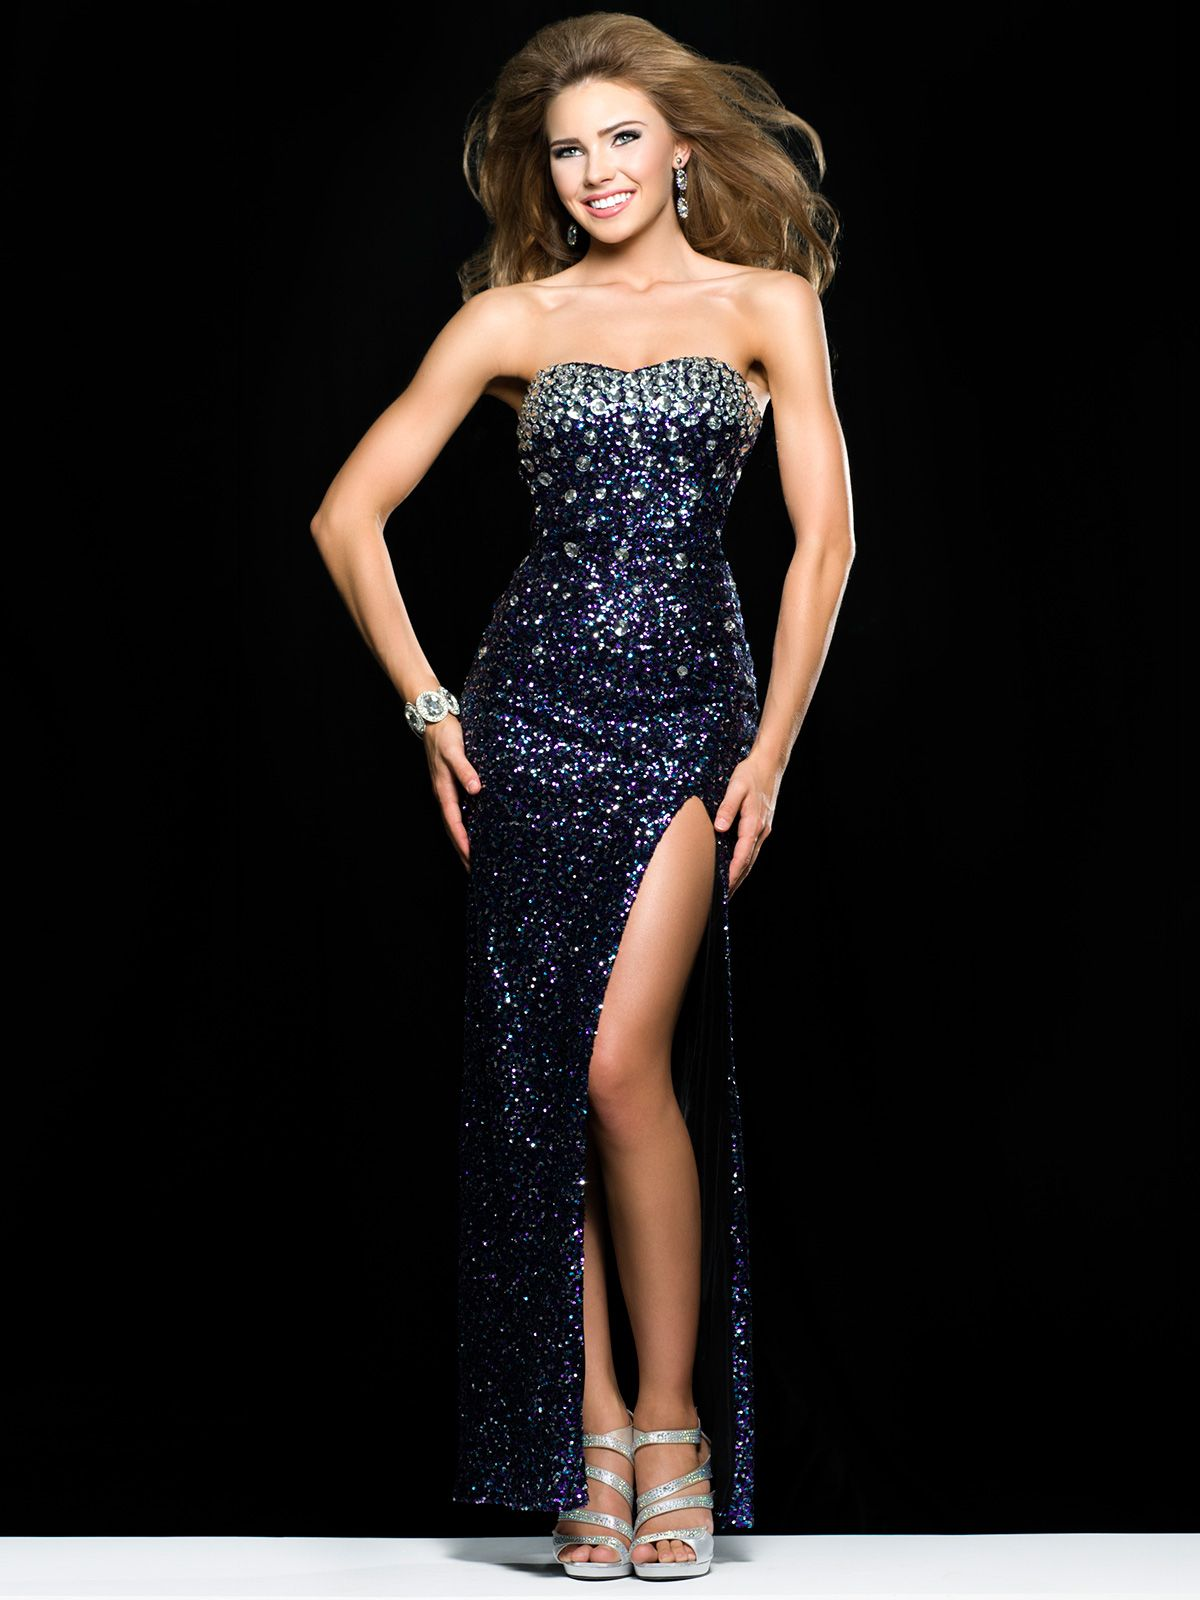 Dazzle everyone in this sparkling clarisse prom dress this all over